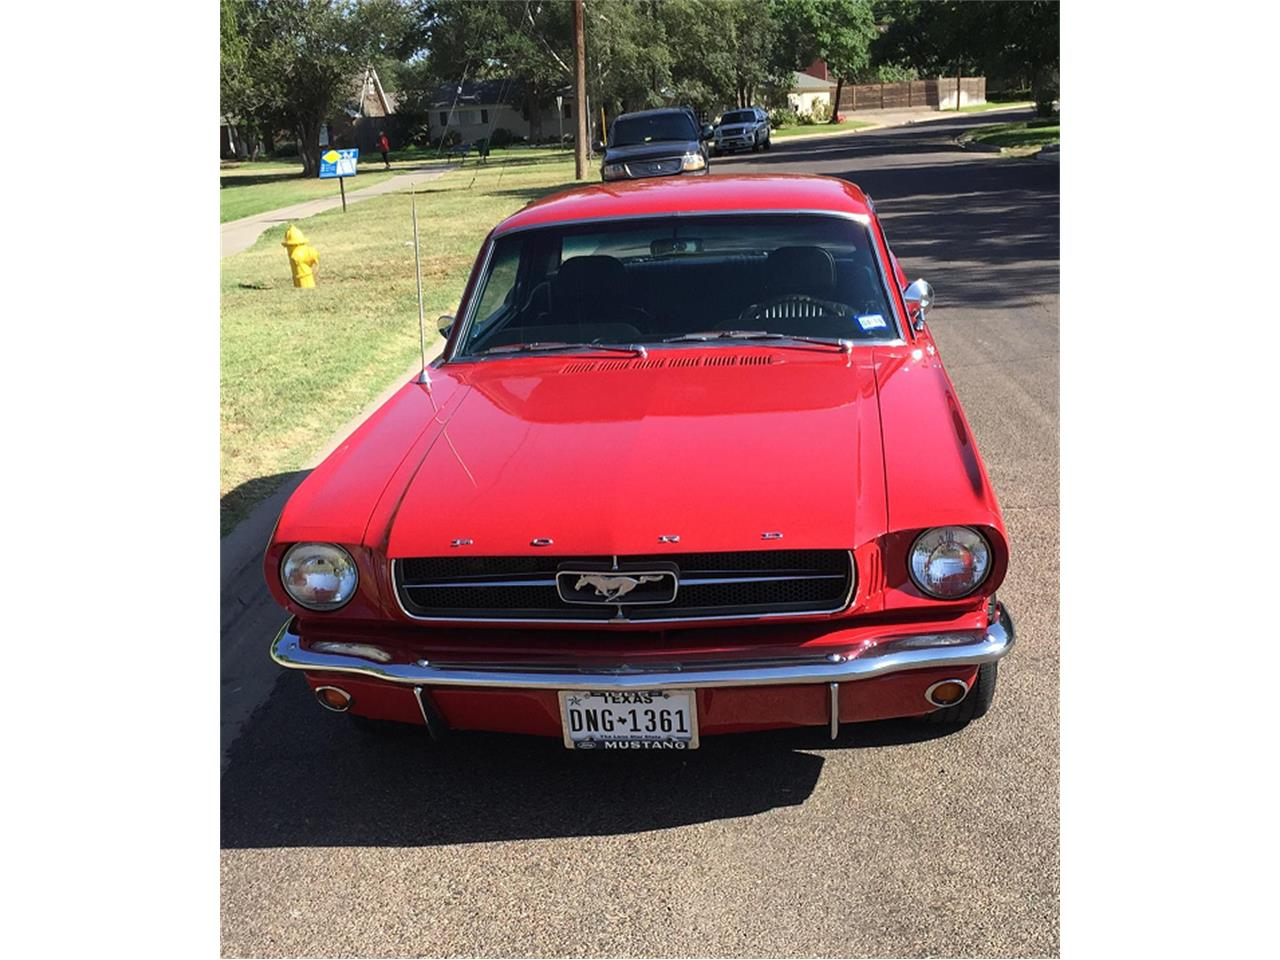 Large Picture of 1965 Ford Mustang located in California Offered by a Private Seller - MOJX